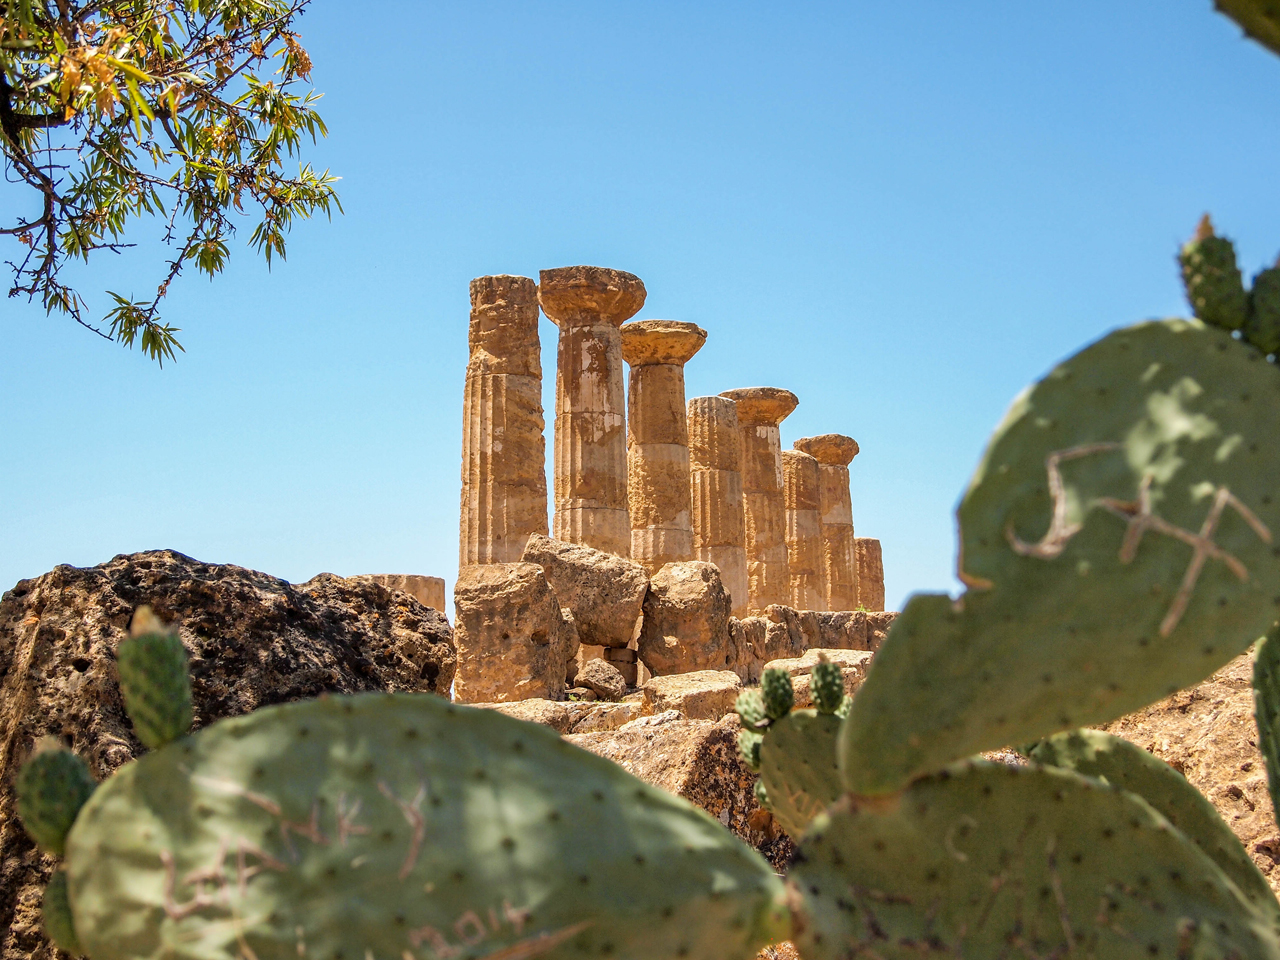 Temple of Hercules in Agrigento